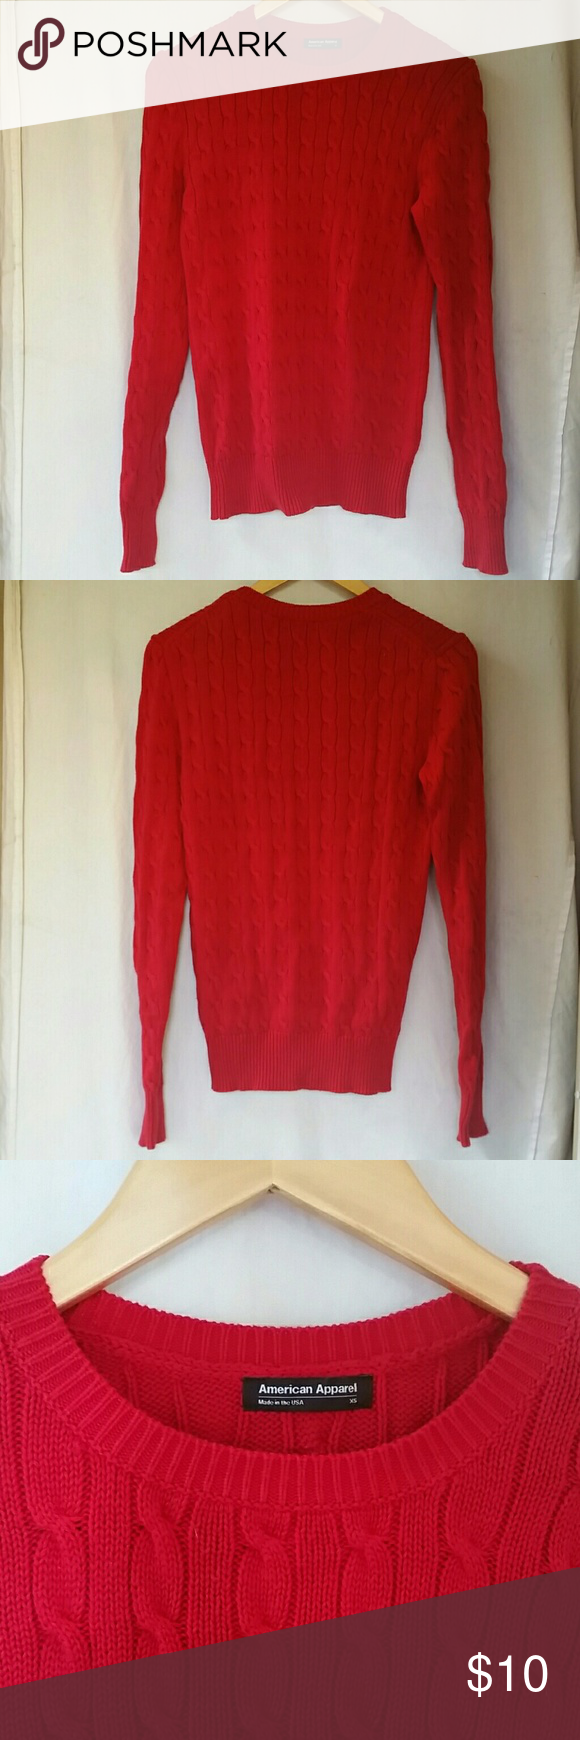 American Apparel Red Sweater | Red sweaters, American apparel and ...